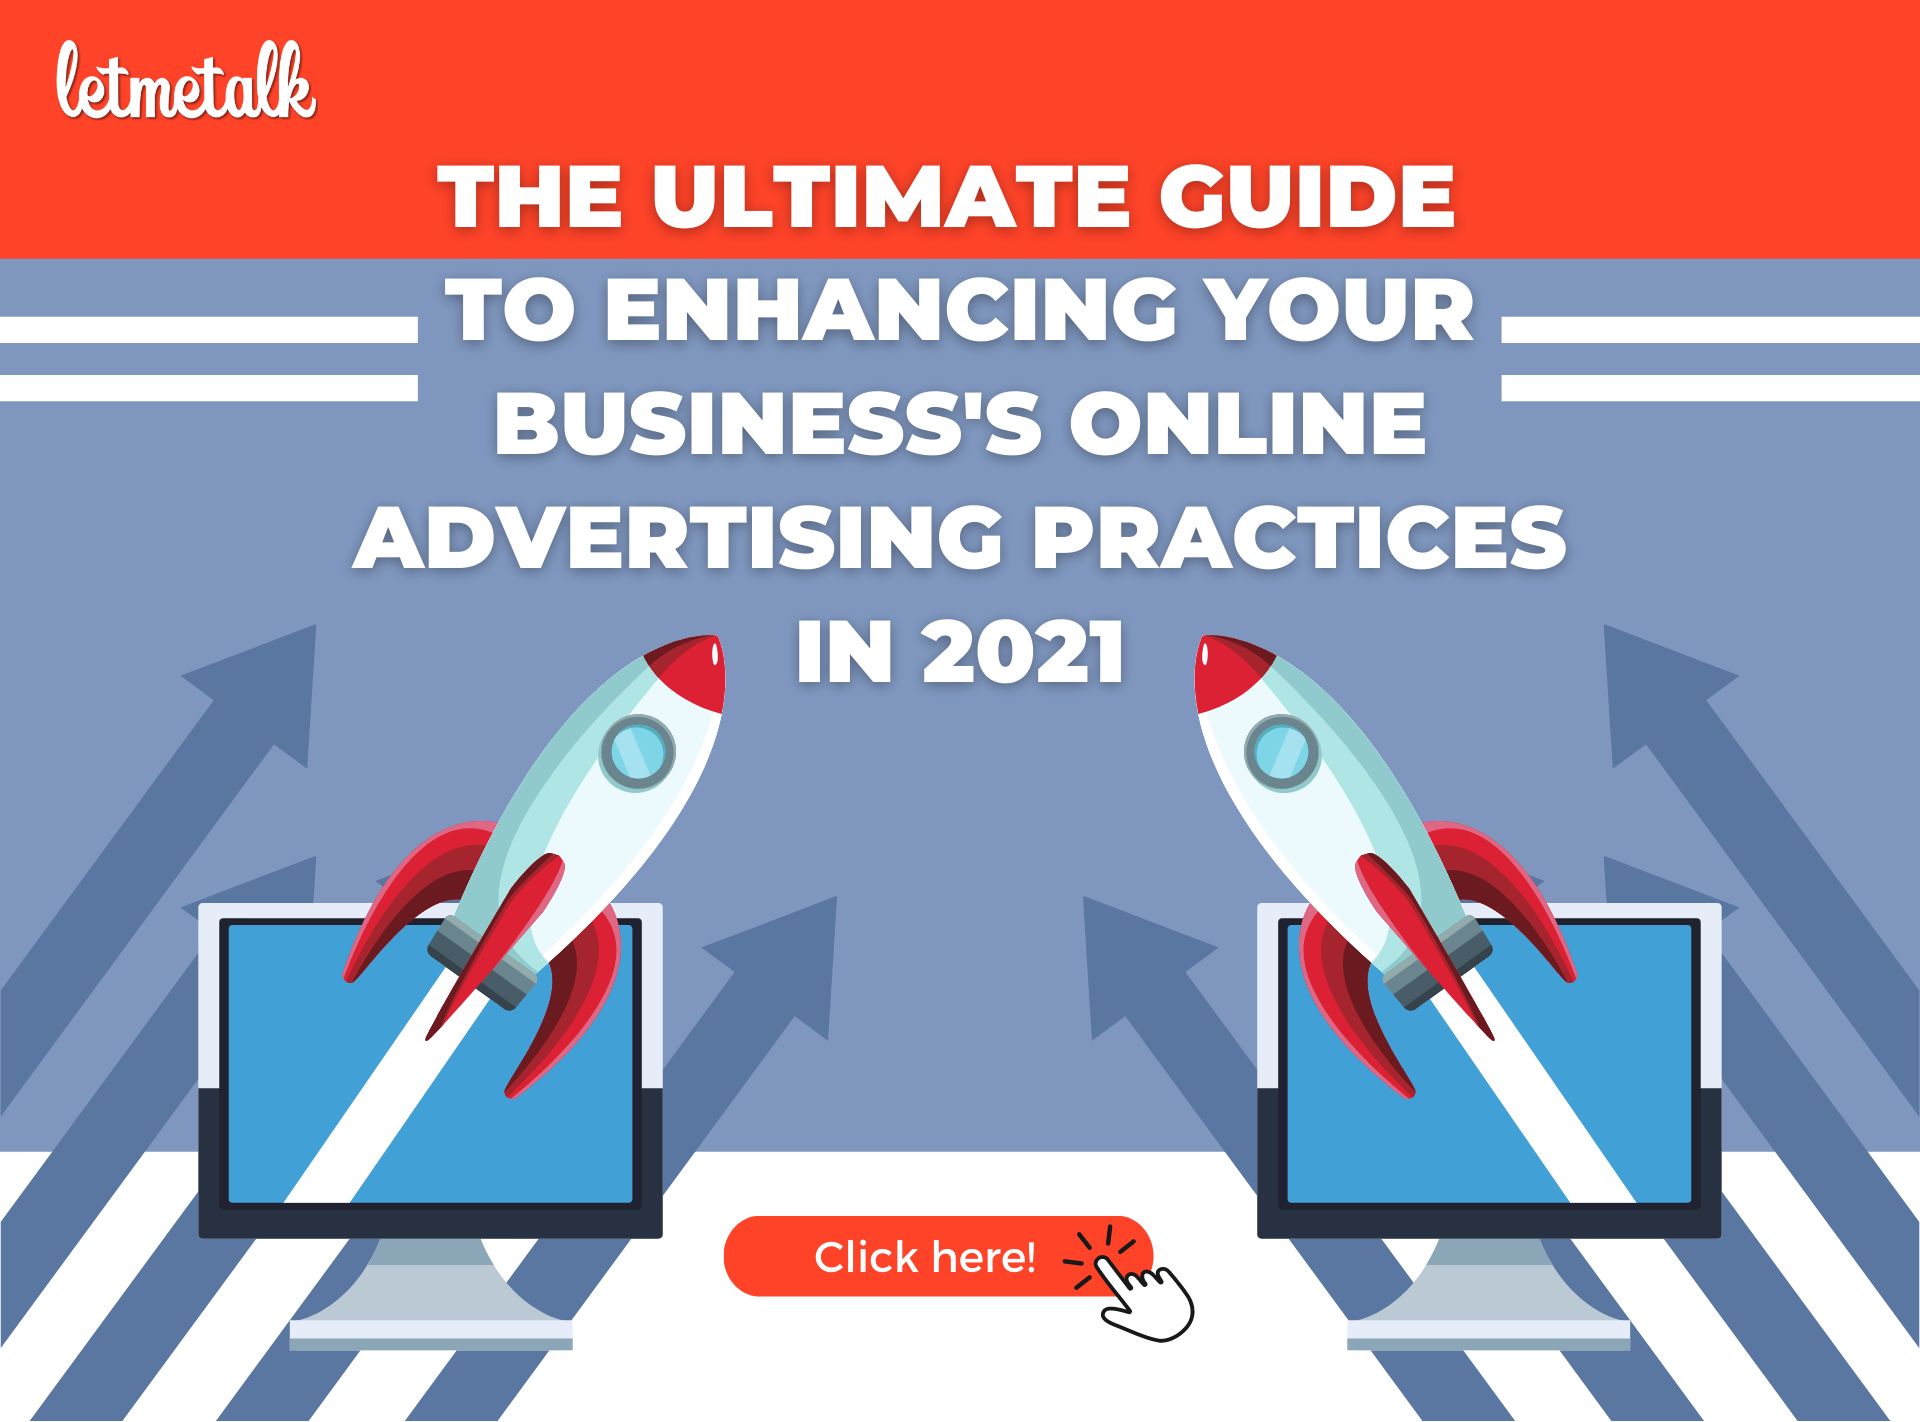 The Ultimate Guide to Enhancing Your Business's Online Advertising Practices in 2021 | Letmetalk